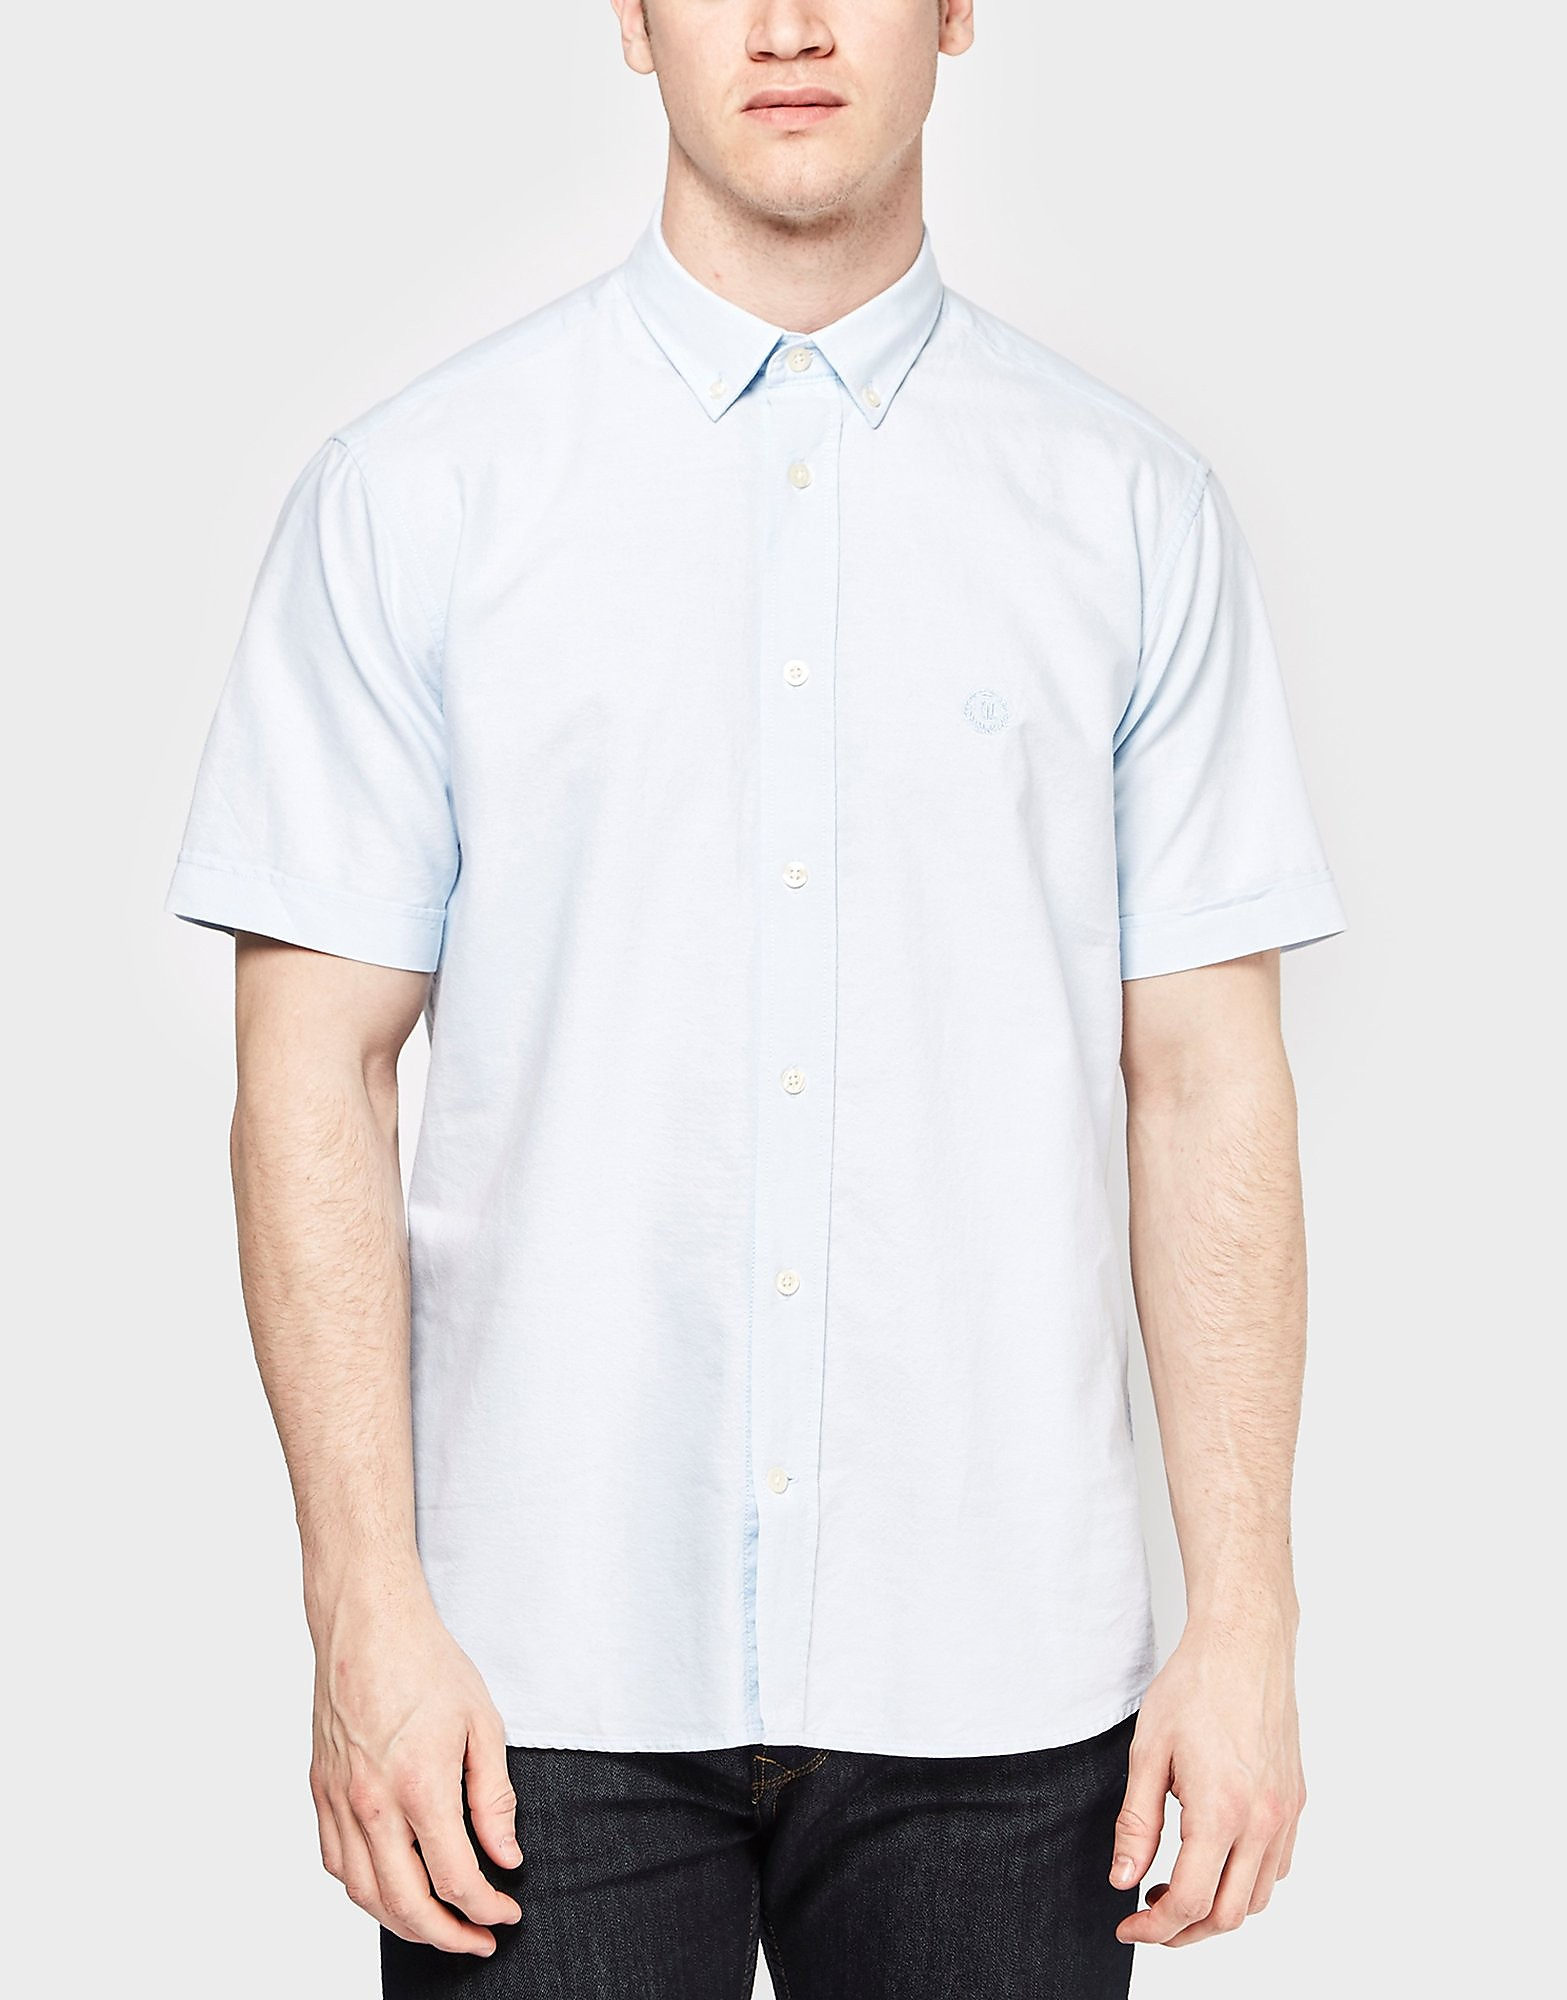 Henri Lloyd Short Sleeve Oxford Shirt